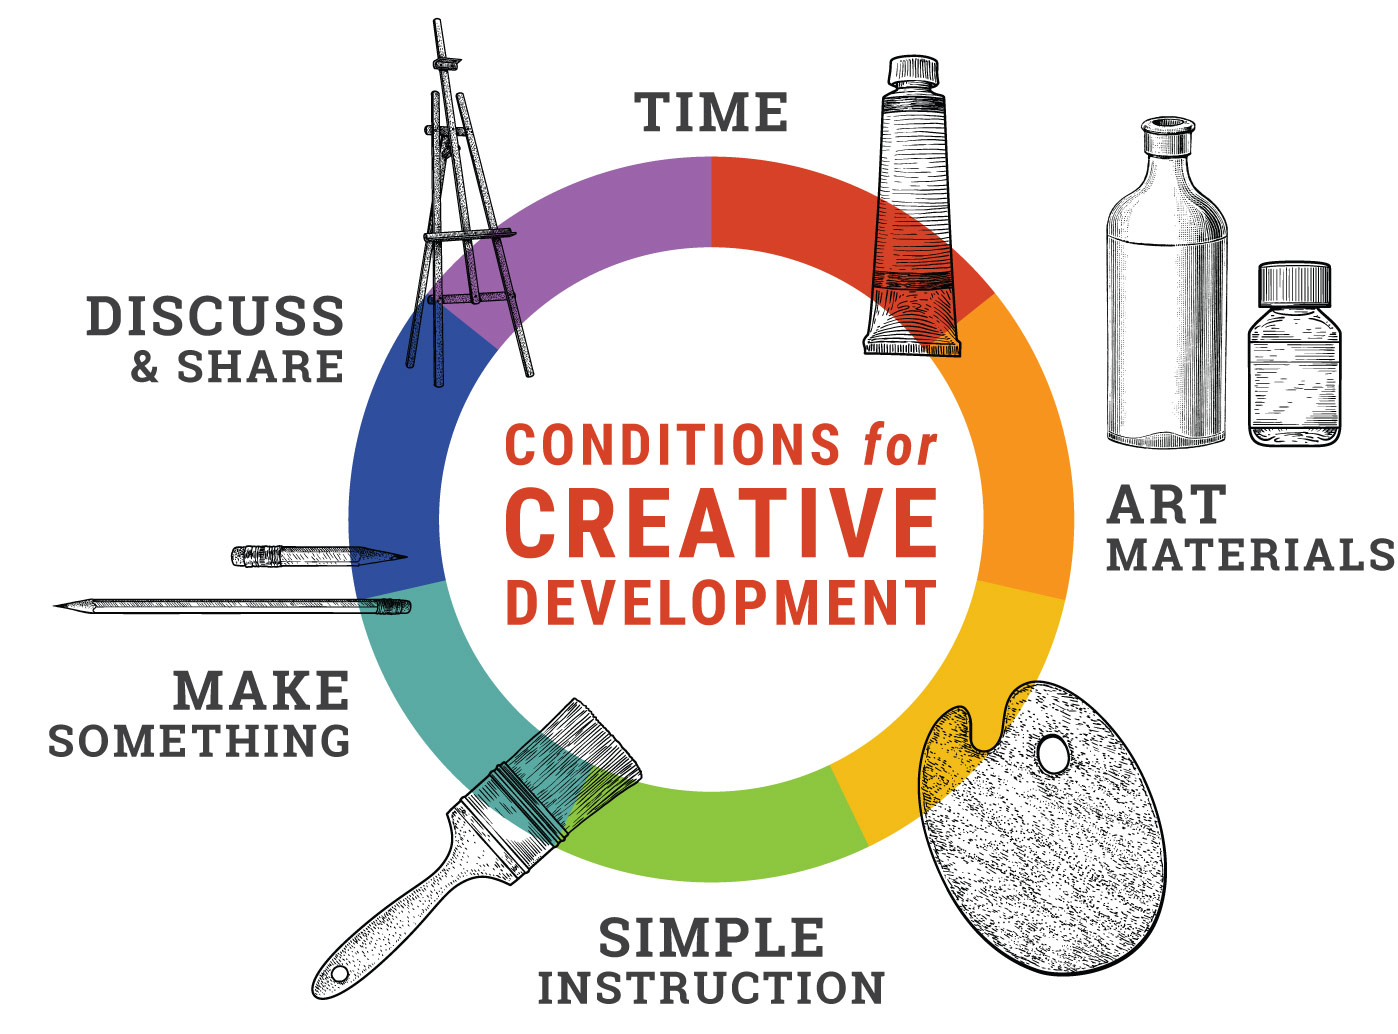 Conditions for Creative Development